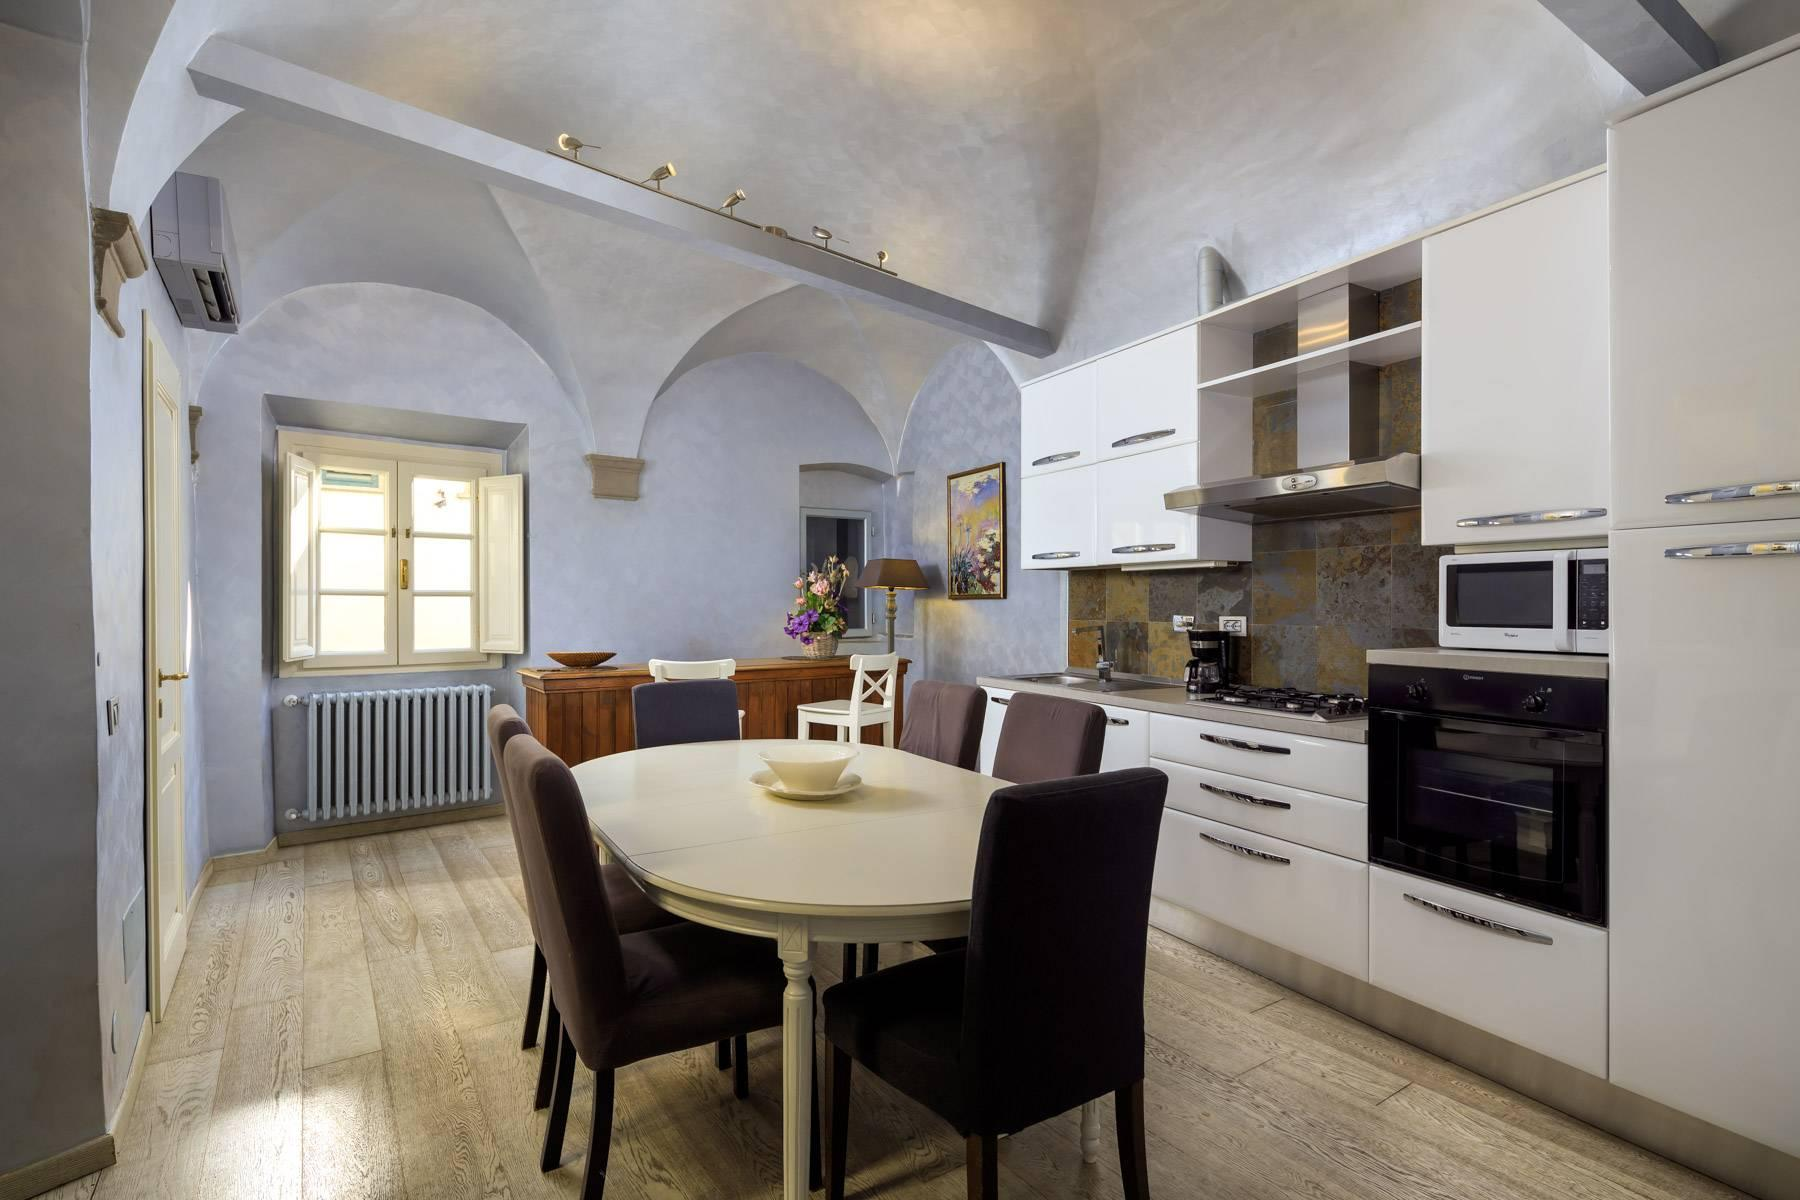 Lovely renovated apartment in the heart of the city - 5